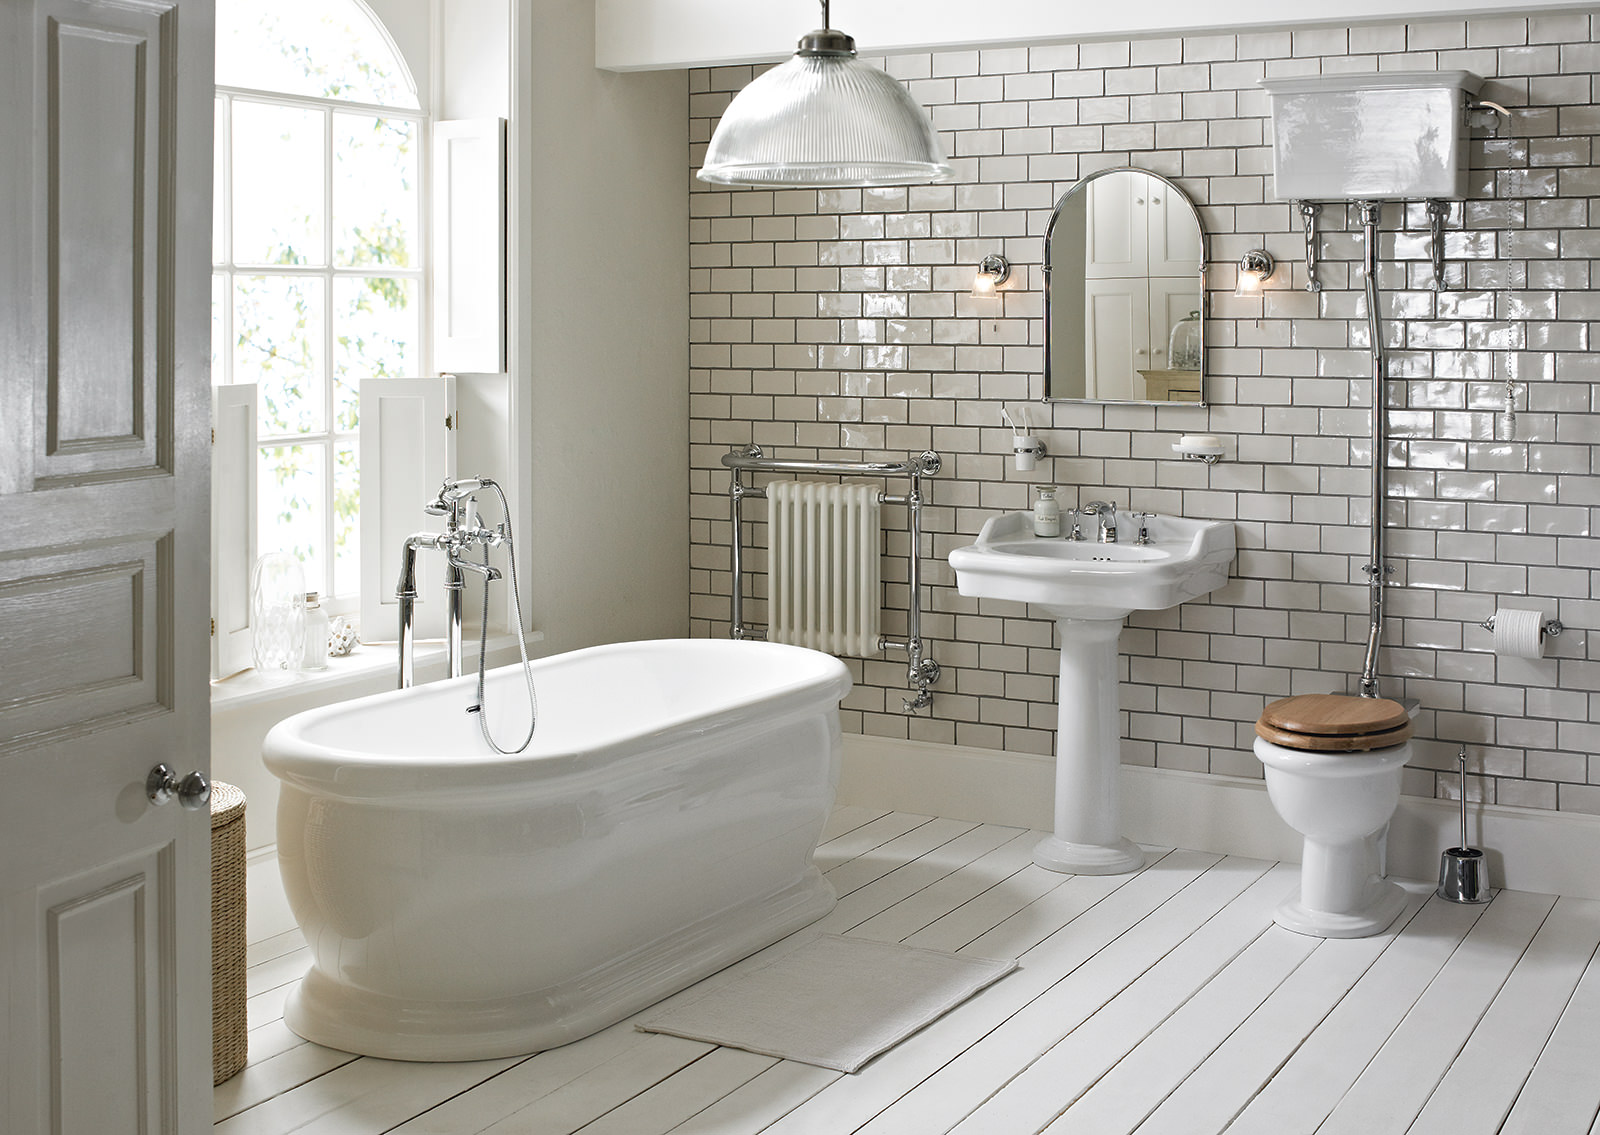 Heritage victoria high level wc and cistern with flush pack for Bathroom floor ideas uk